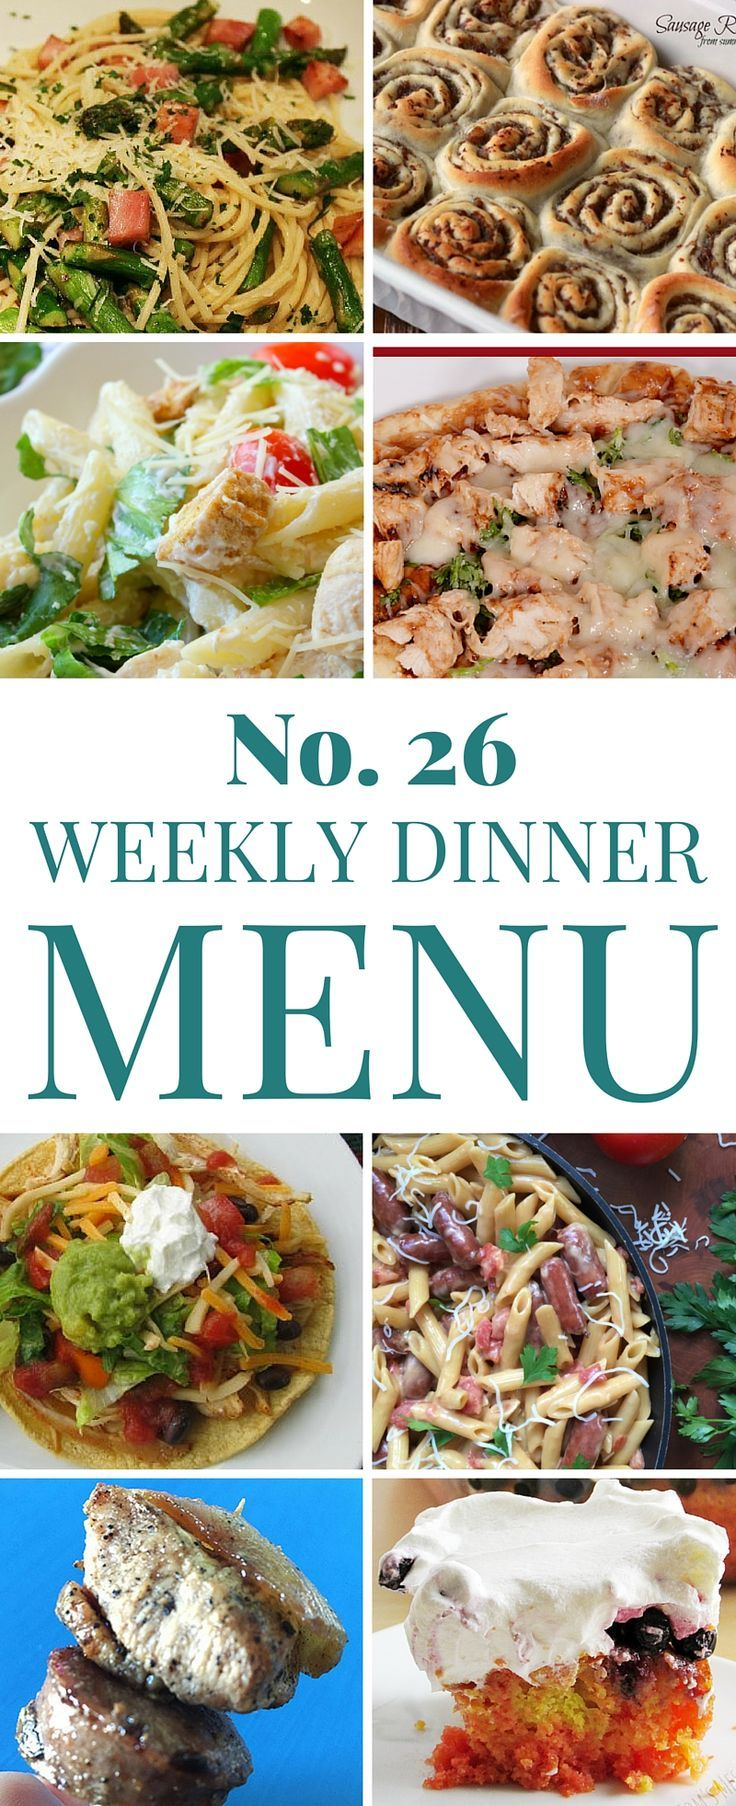 Let me plan your weekly dinner menu for you! All recipes are tested in our kitchens and are sure to please the pickiest of picky eaters.